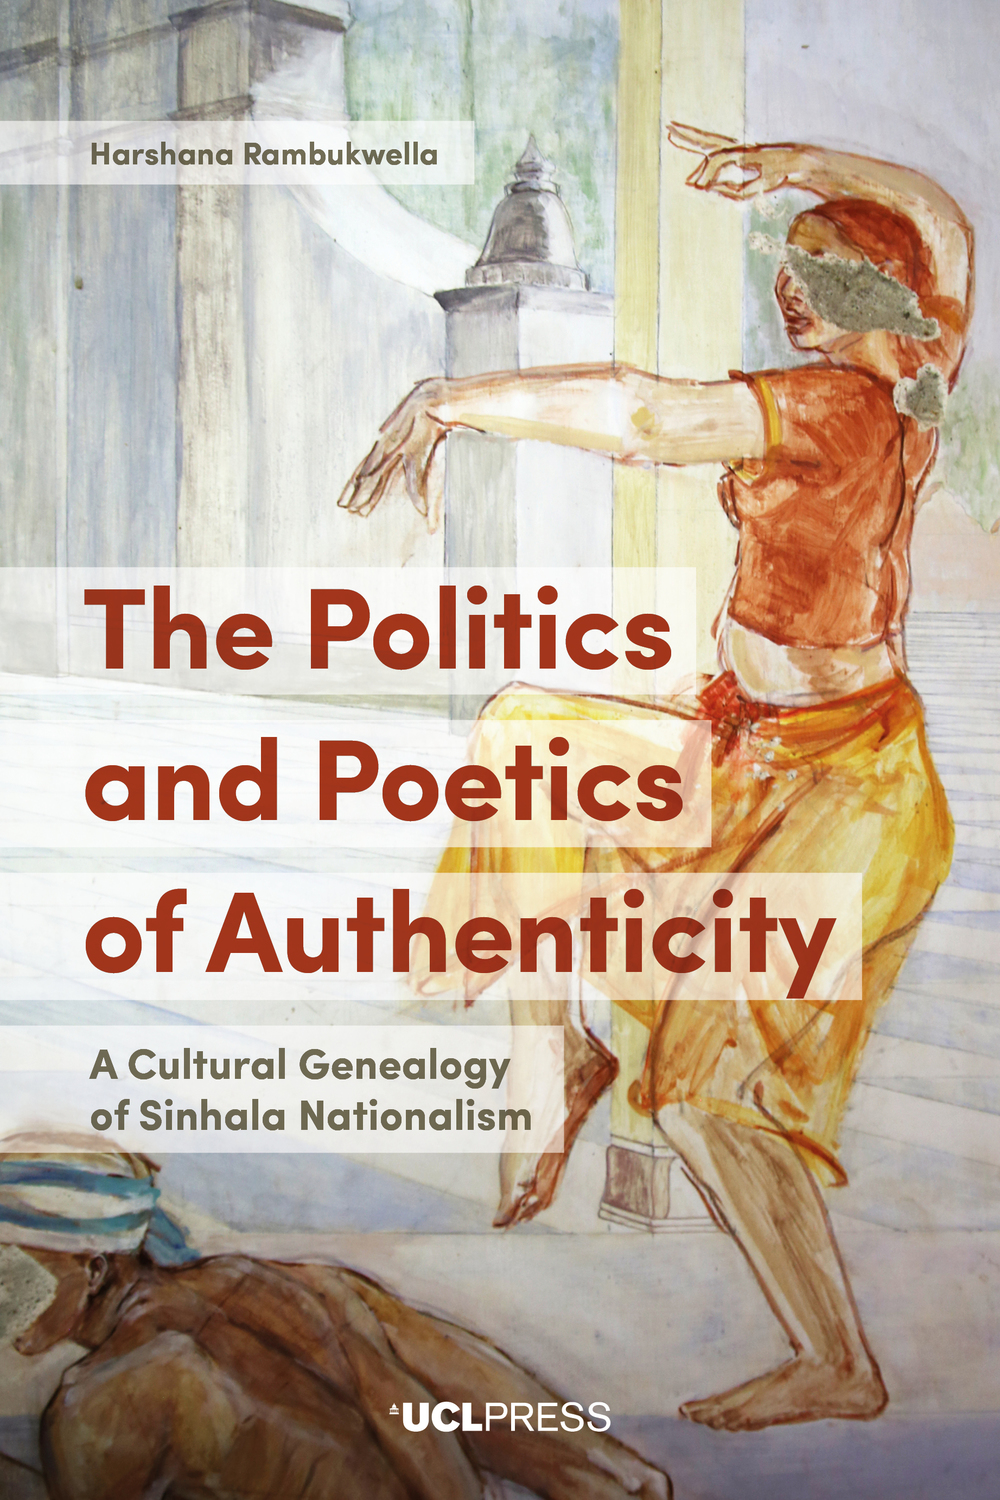 The Politics and Poetics of Authenticity